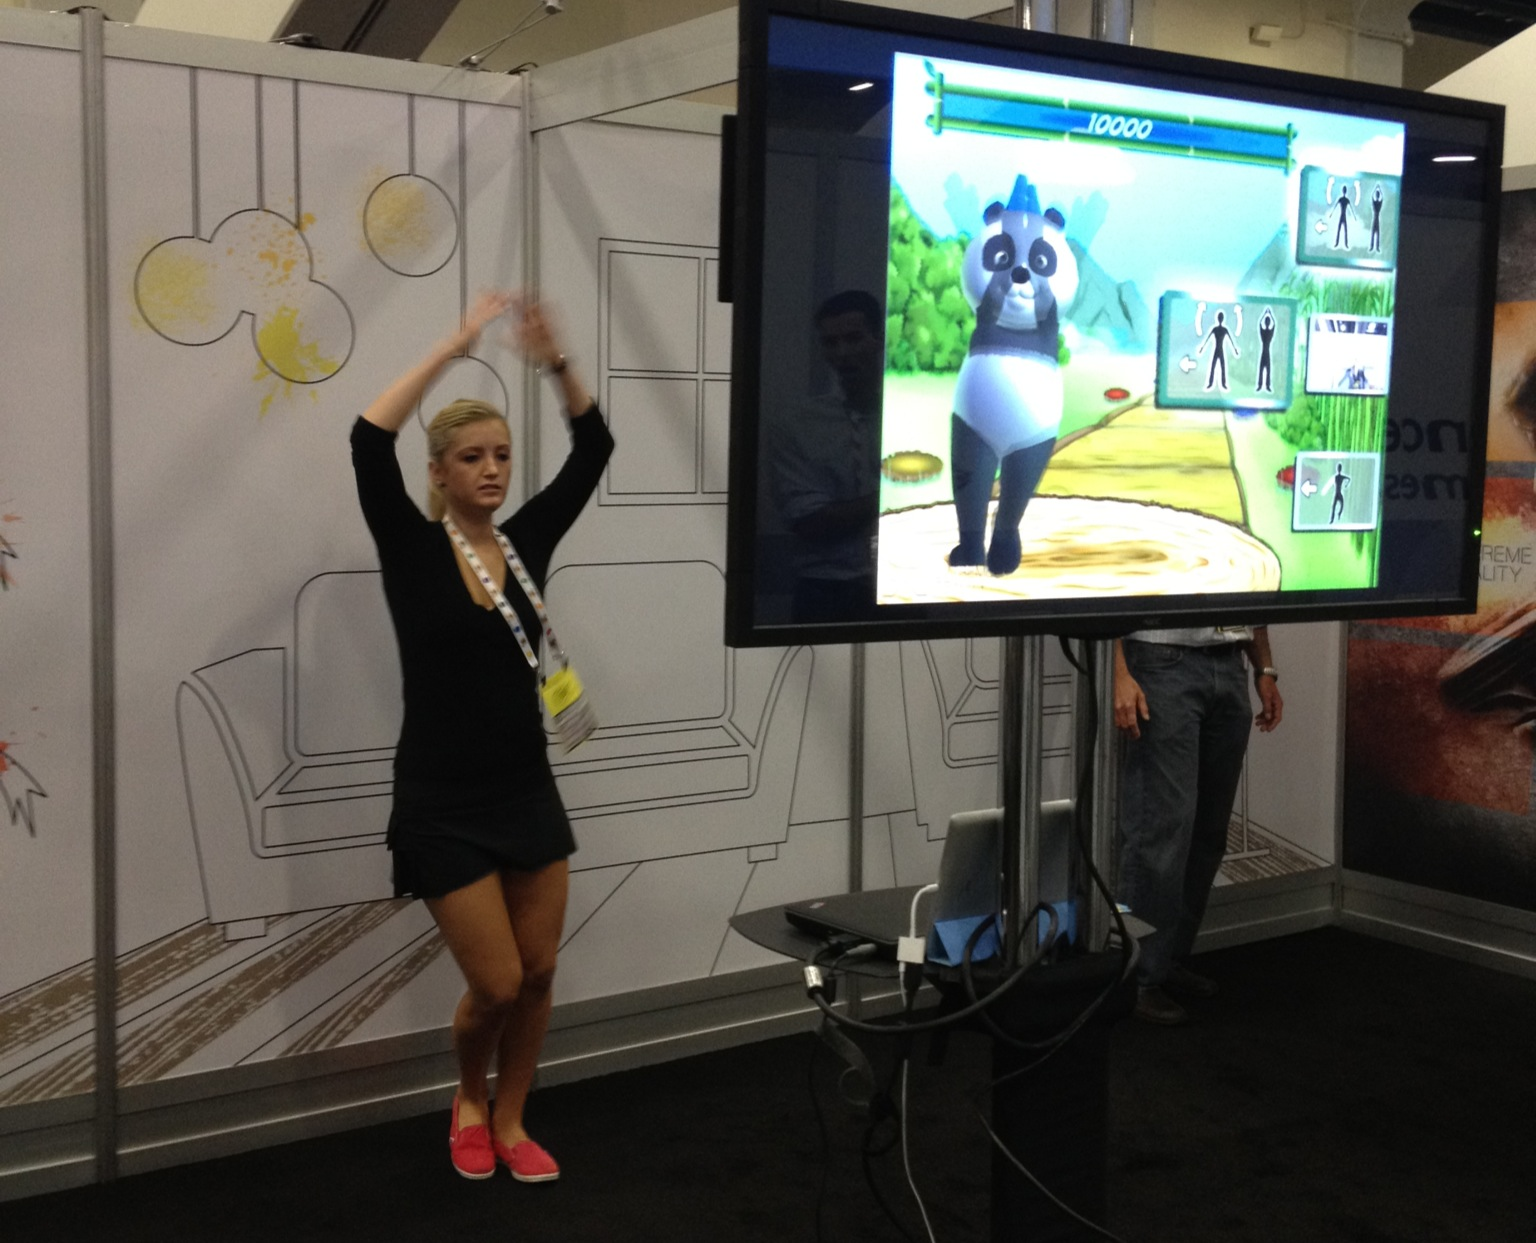 Gesture Tracking without a Kinect